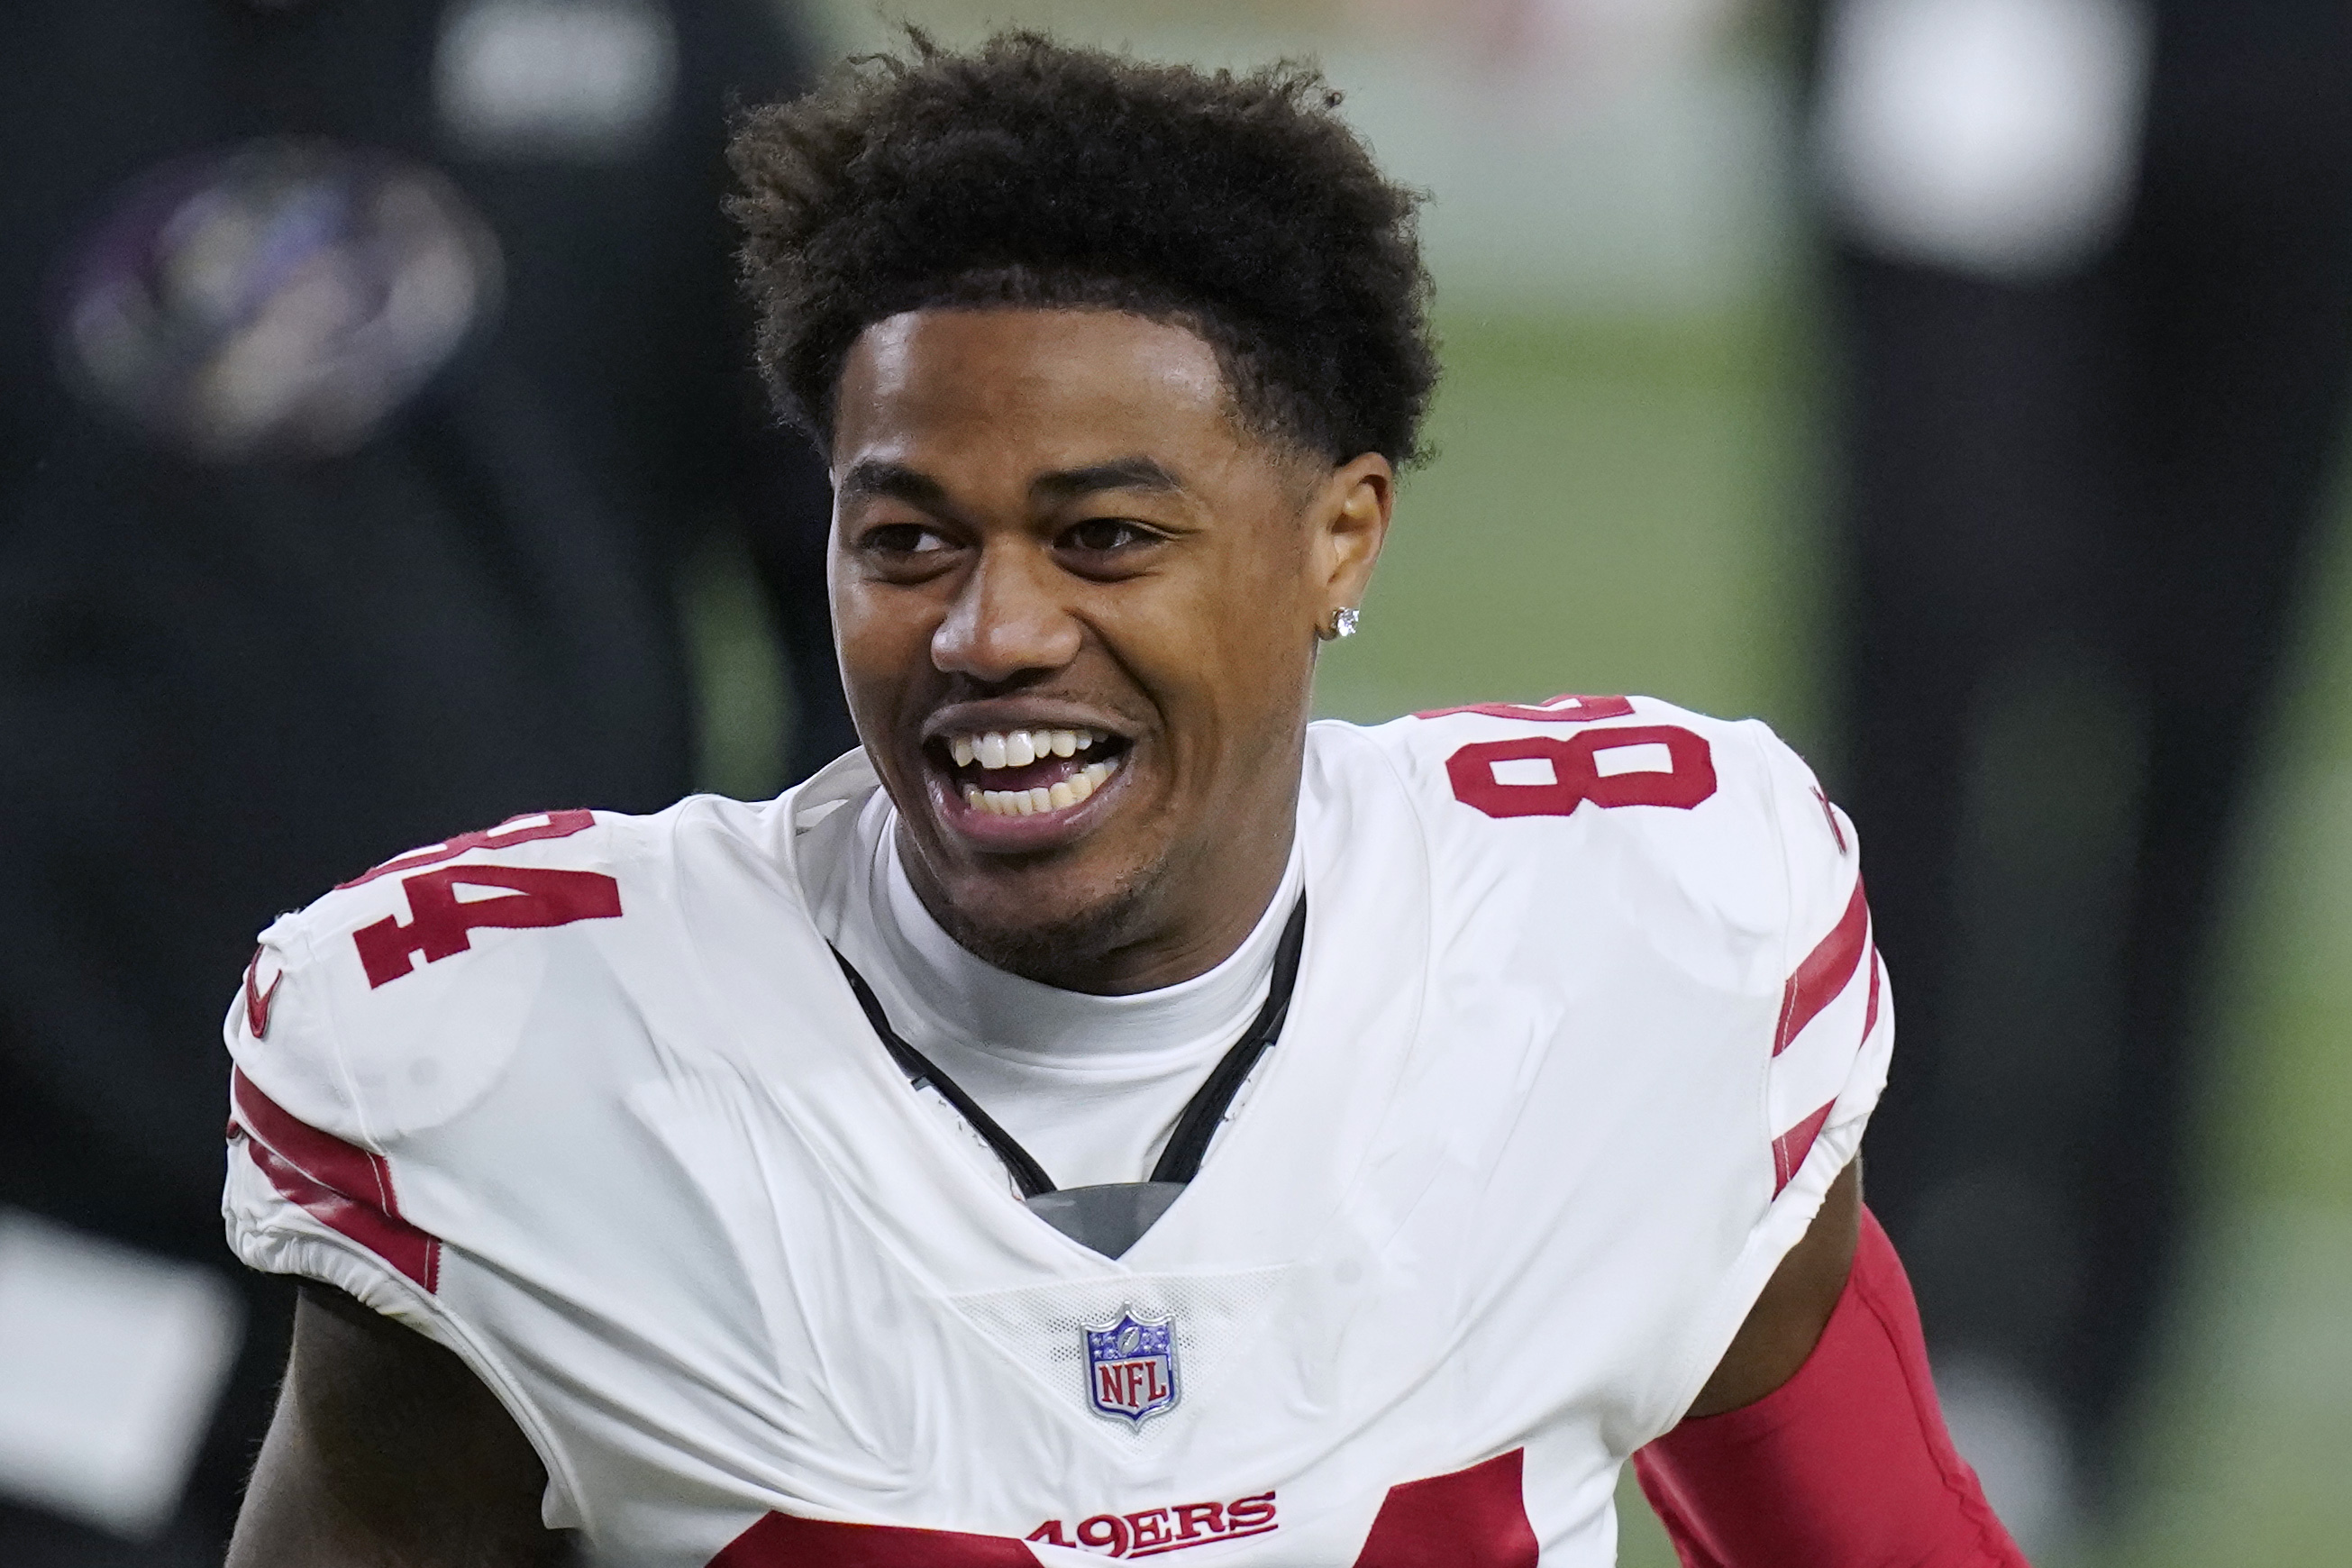 Nfl And Players Union Investigating 49ers And Kendrick Bourne For Possible Violations Of Coronavirus Protocols The Boston Globe